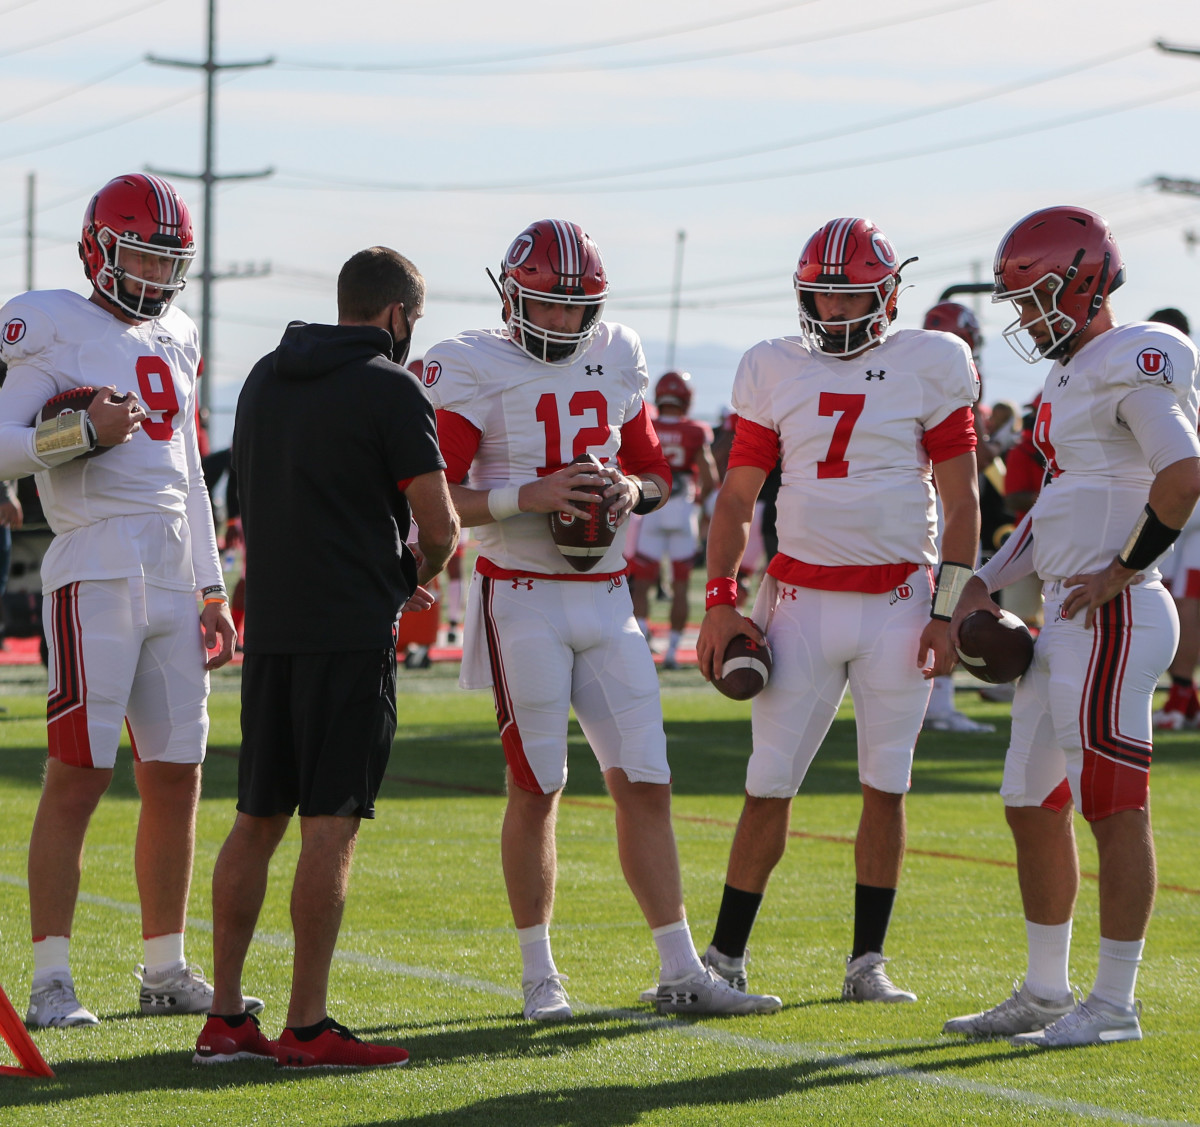 Utah quarterbacks (from left) Cooper Justice, Drew Lisk, Cameron Rising and Jake Bentley huddle together during a recent practice during fall camp.